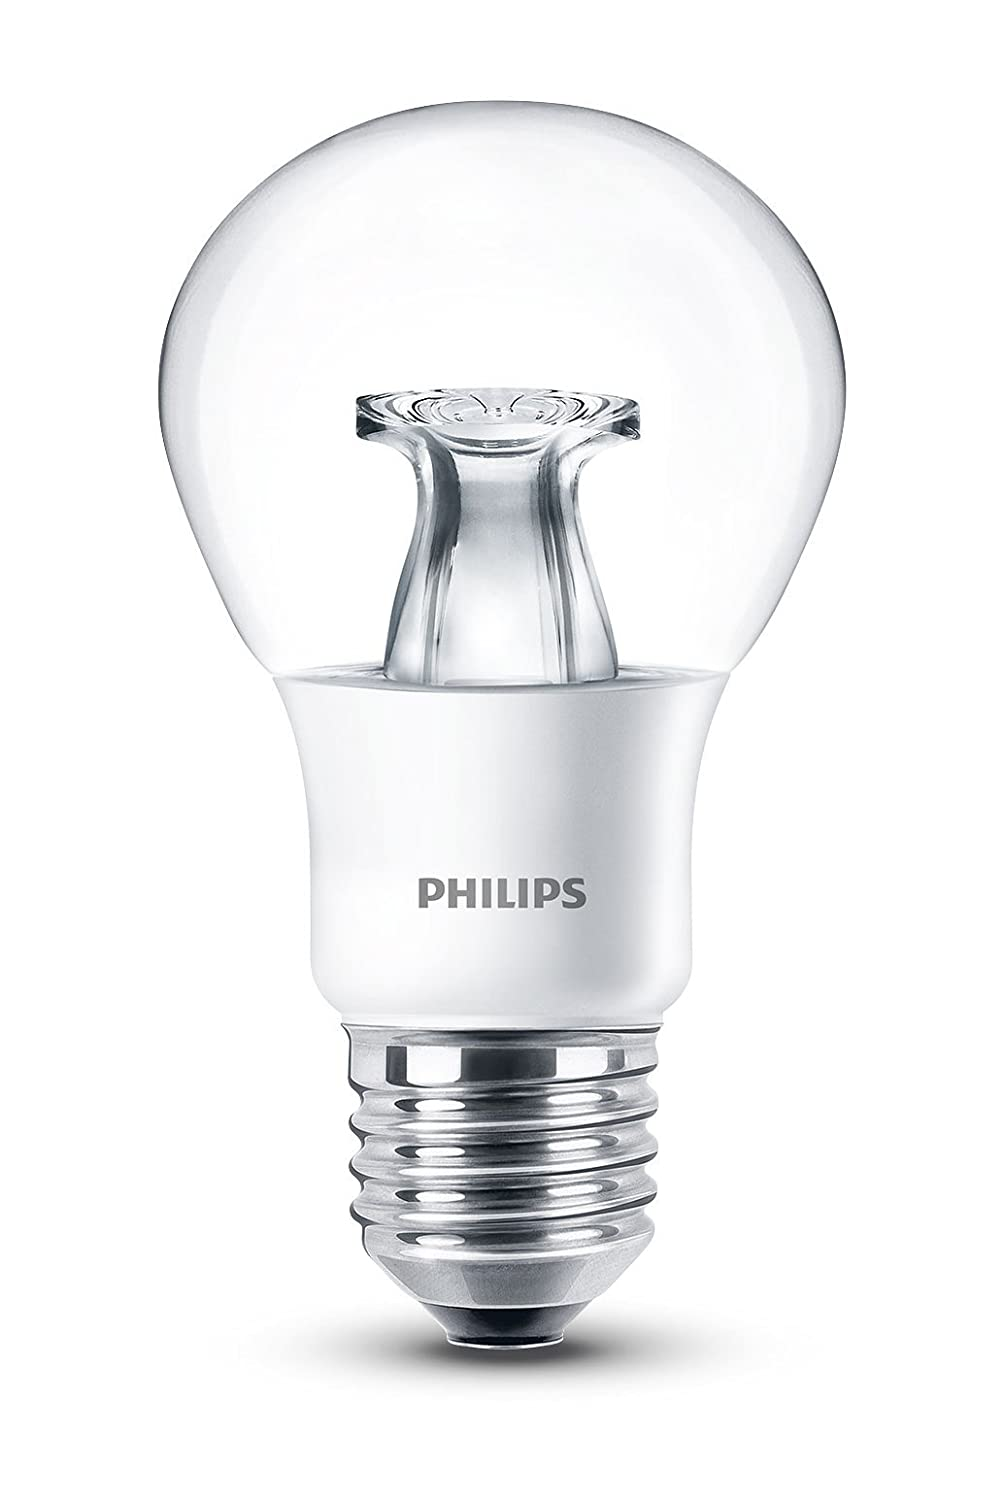 Philips led lampe warmglow ersetzt 25w eek a e14 warmwei philips led warmglow ersetzt 60 w e27 warmwei 2700 kelvin 806 lumen dimmbar 8718696481240 parisarafo Image collections